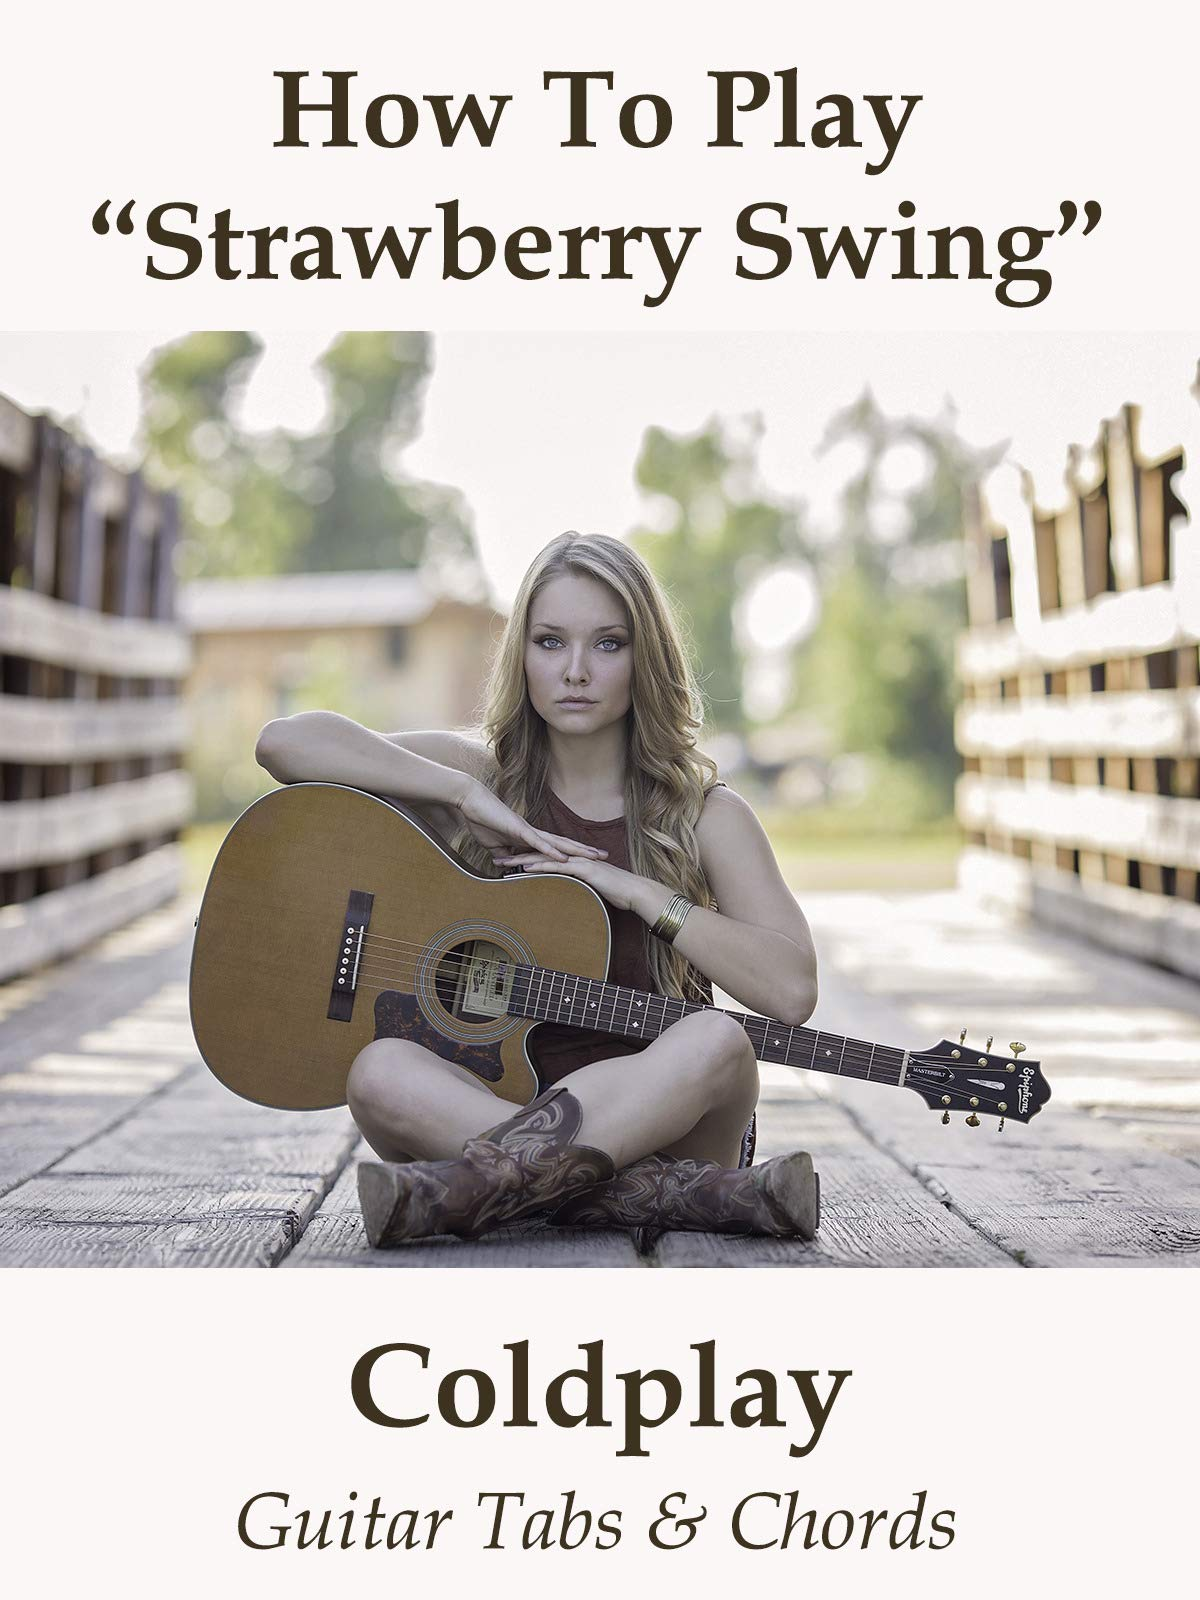 Watch How To Play Strawberry Swing By Coldplay Guitar Tabs